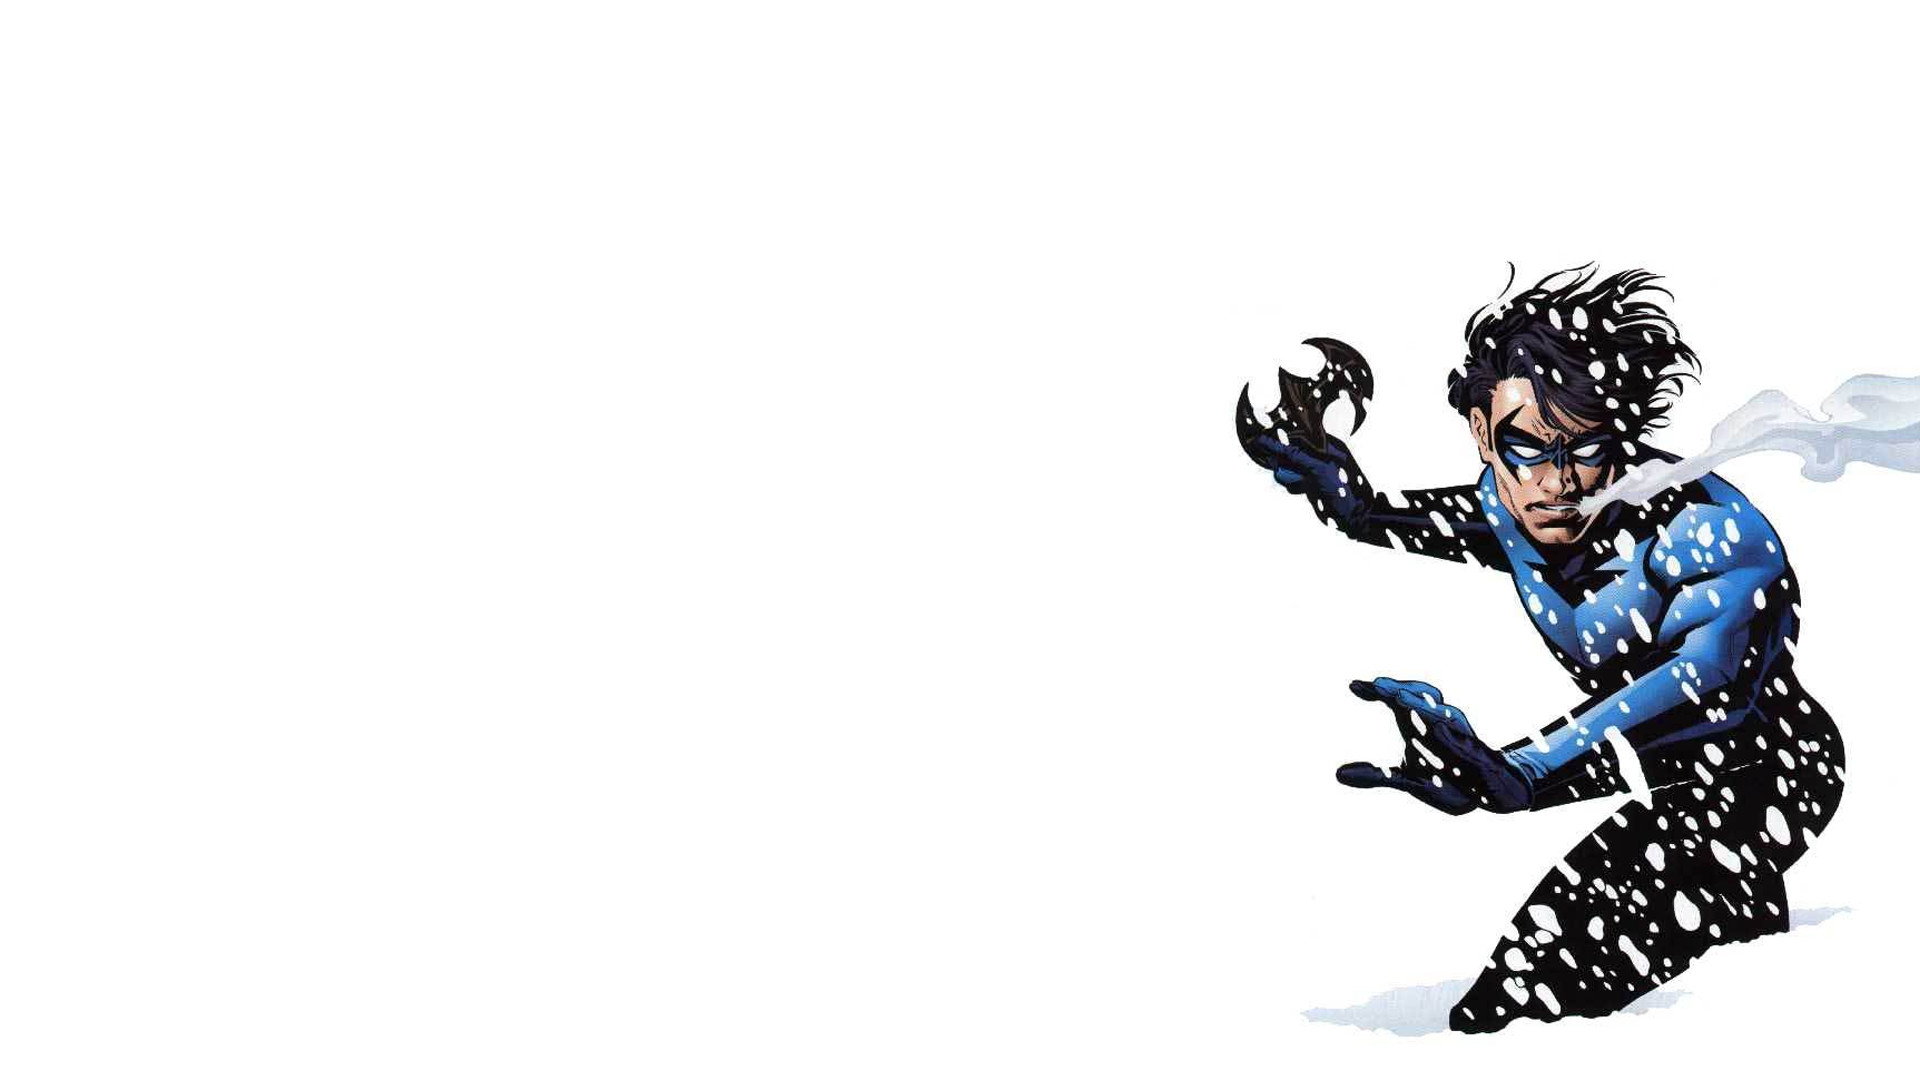 1920x1080 Nightwing Computer Wallpapers, Desktop Backgrounds |  | ID .